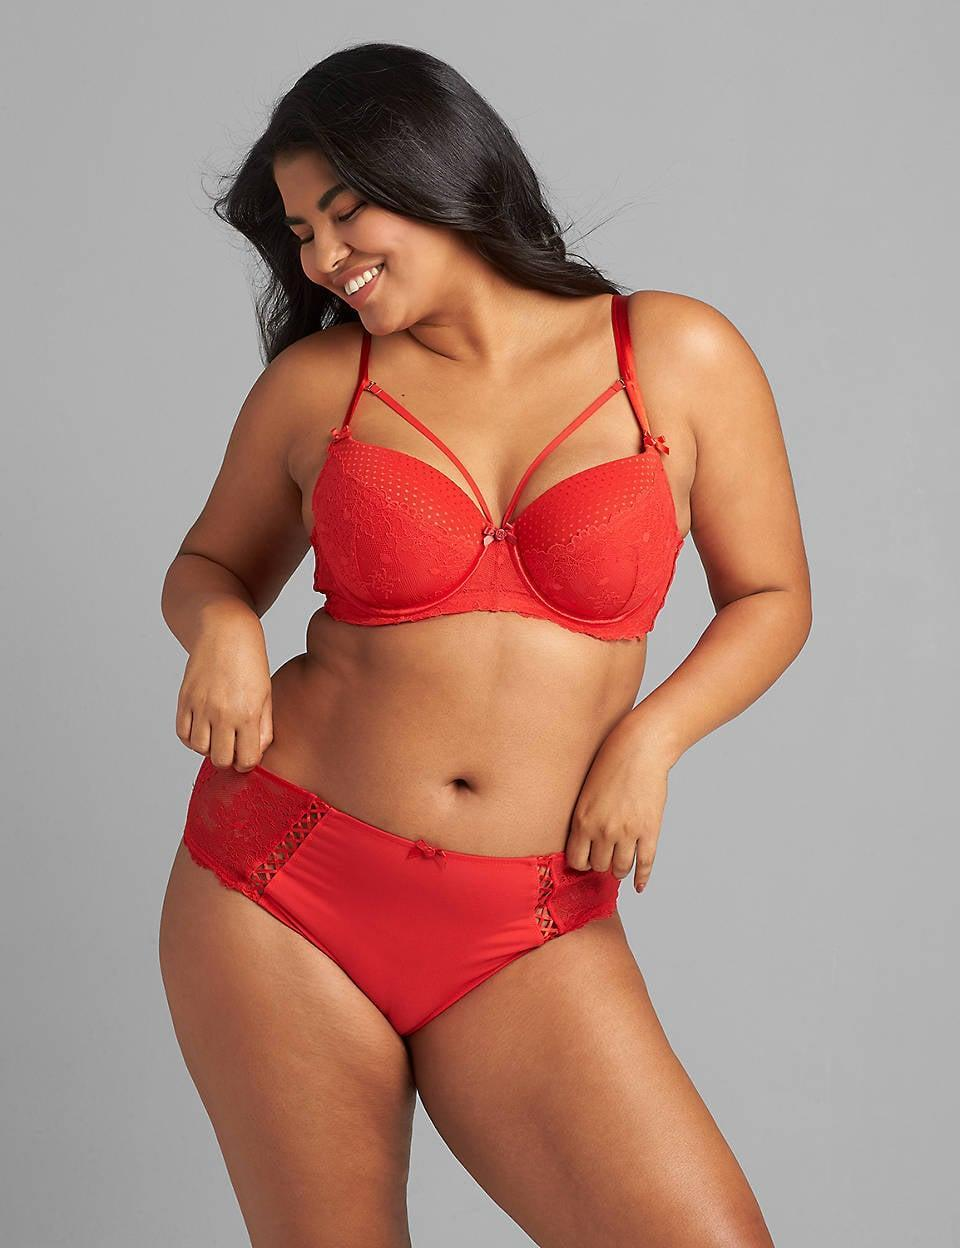 <p>Simple and sweet, this red-hot <span>CaciqueIcon Spot Mesh &amp; Lace Boost Balconette</span> ($57-$67) is sure to make anyone do a double take.</p>